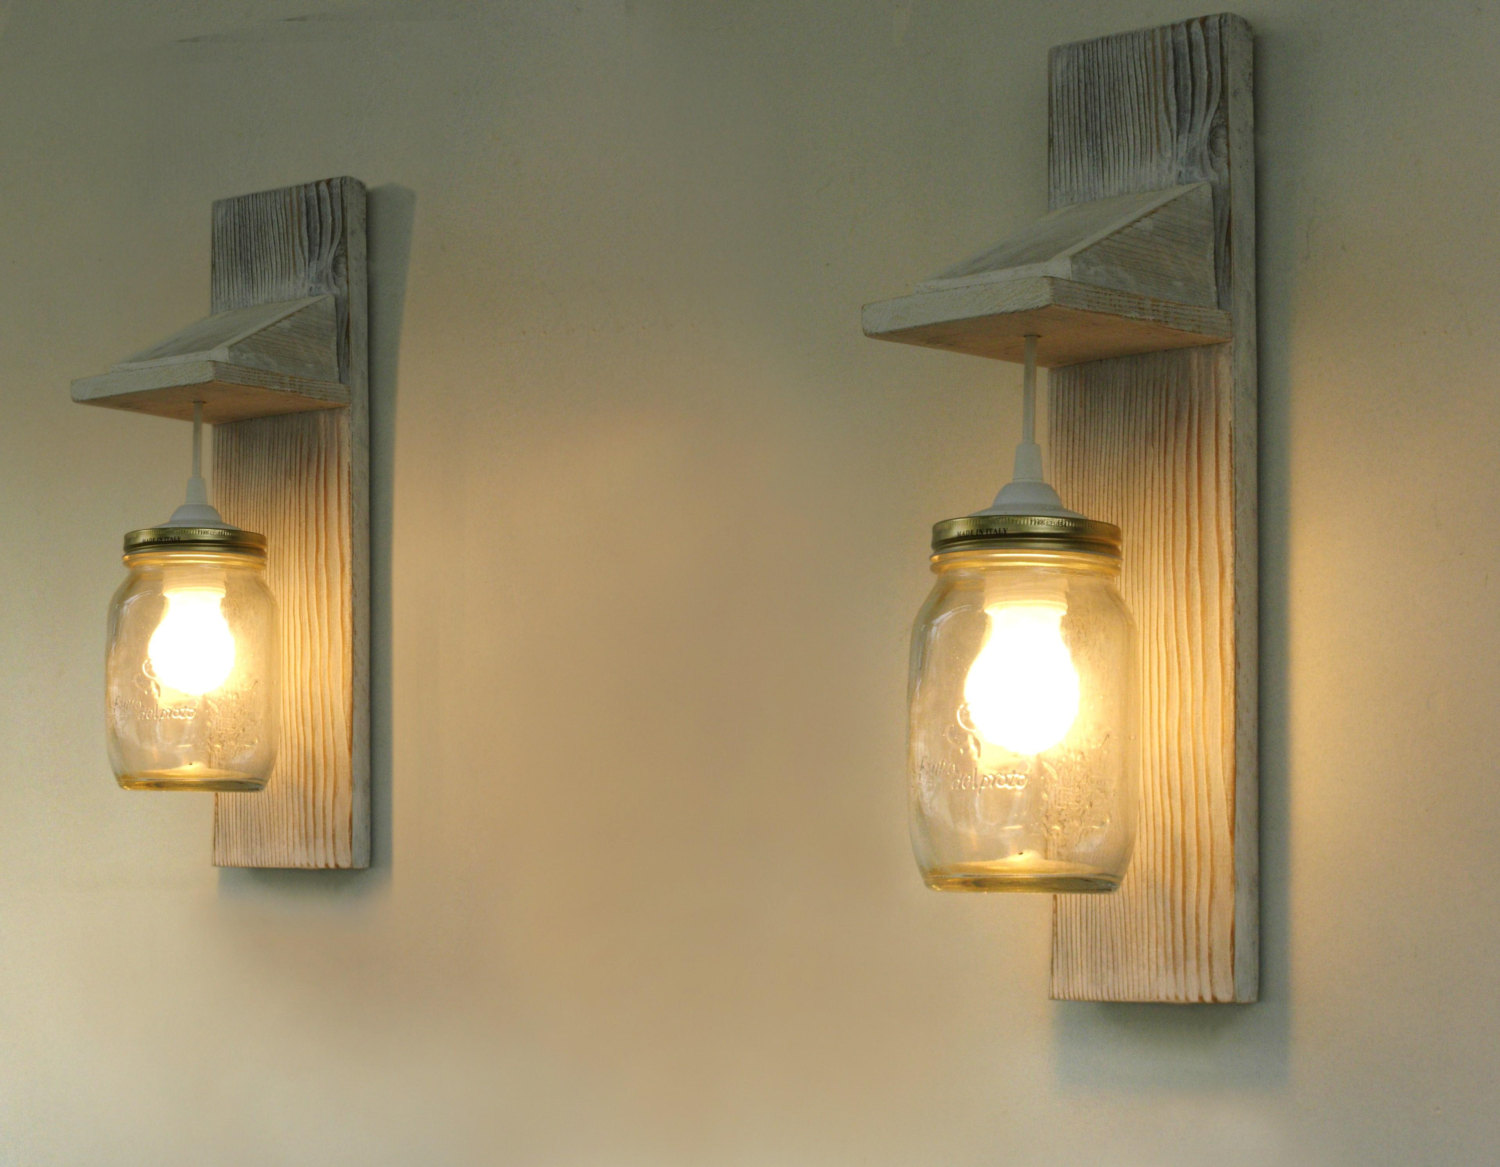 Wooden wall lights - fit perfectly to the interiors of ... on Wood Wall Sconces id=52836